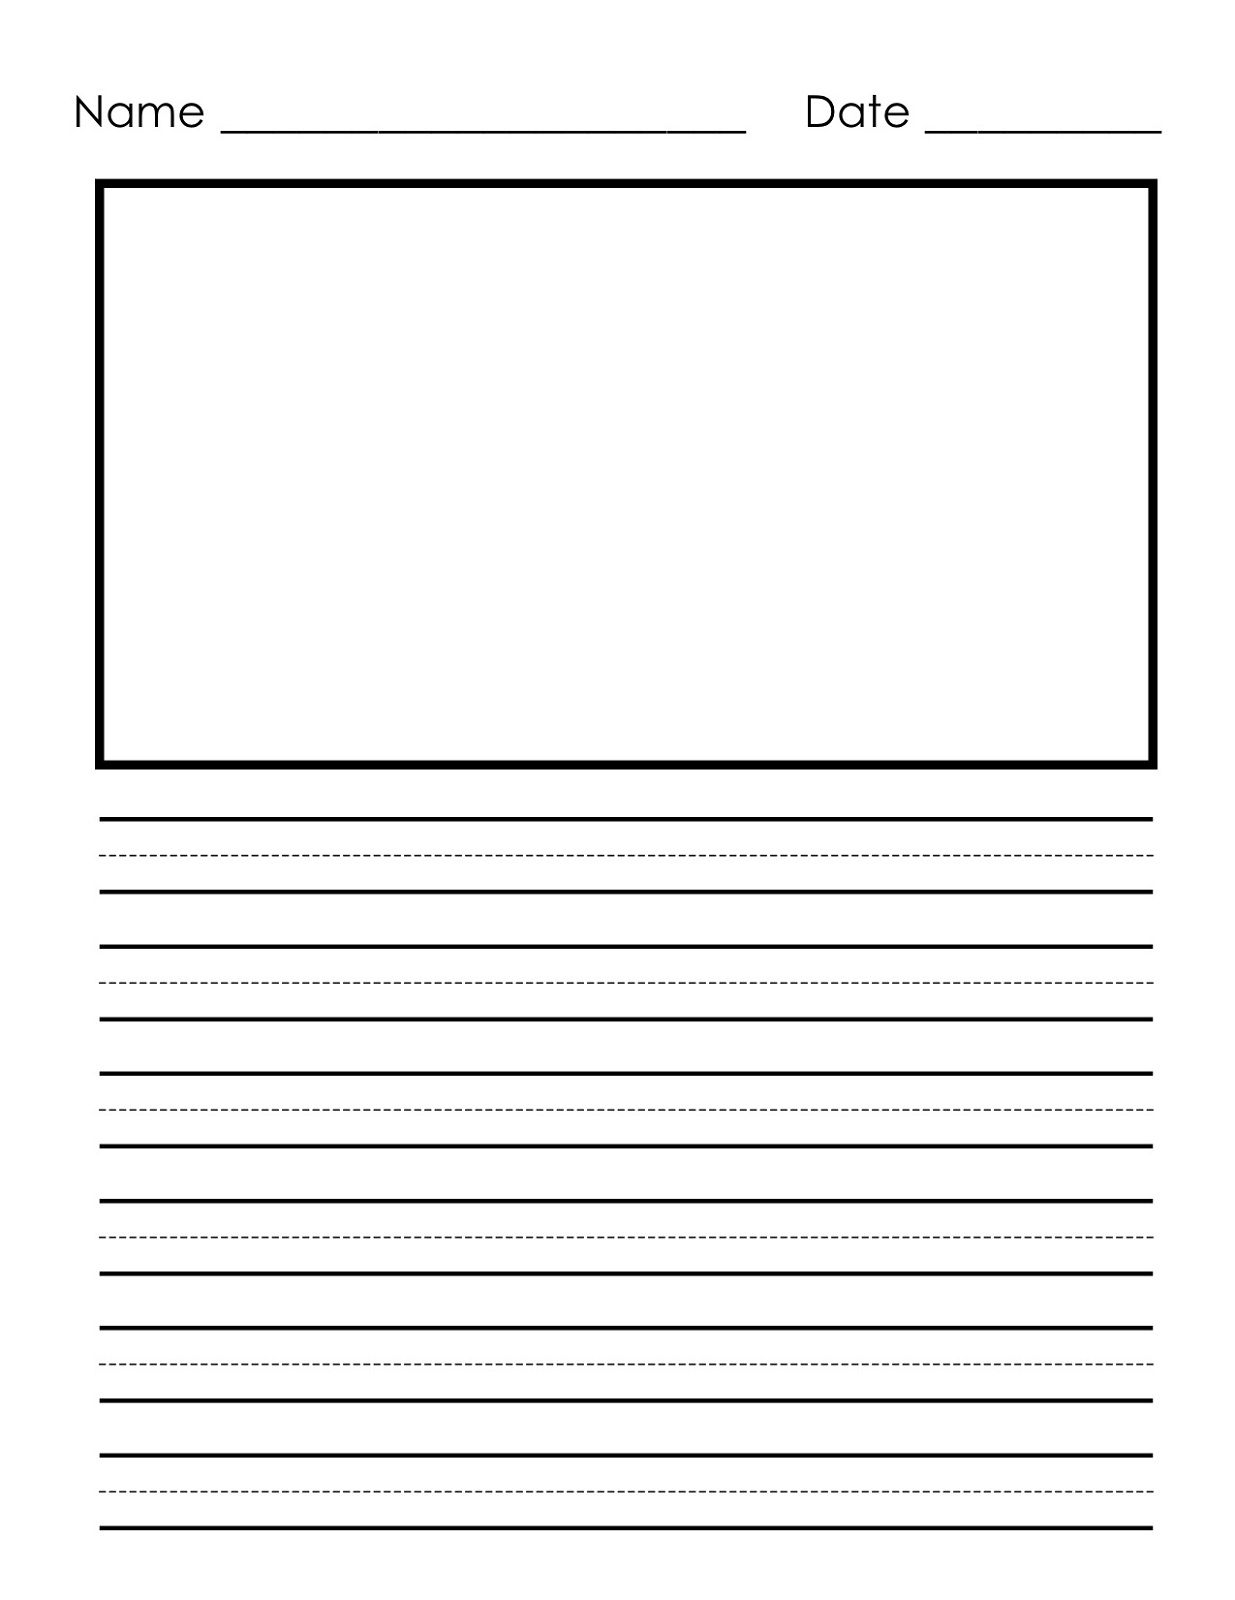 printable writing paper printable editable blank calendar  writing paper printable for kids kiddo shelter notebook paper